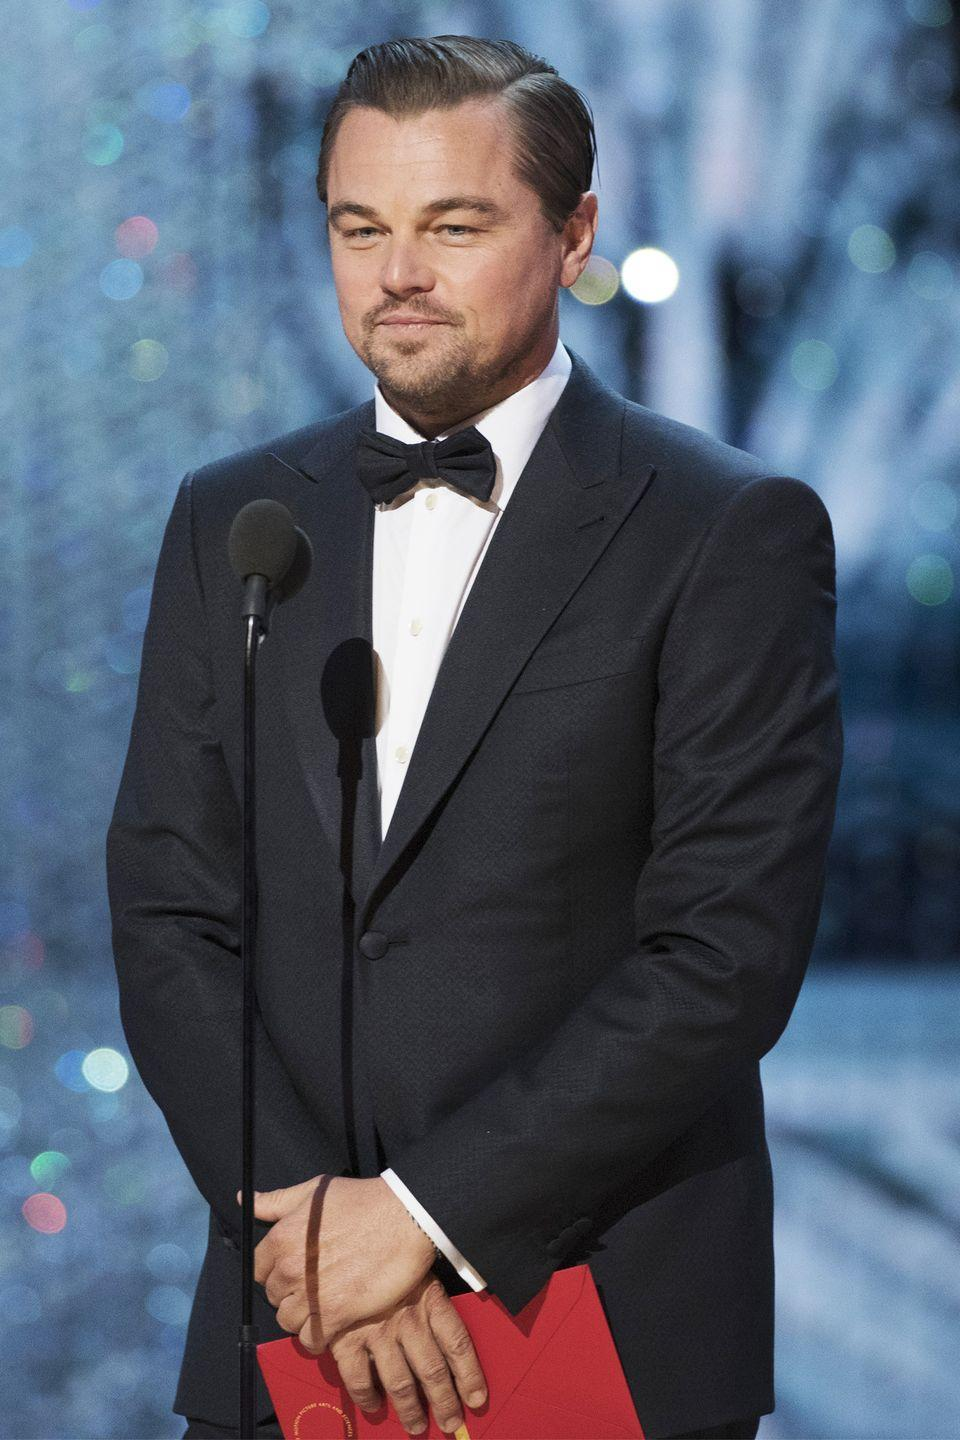 "<p>The Oscar-winner <a href=""http://www.eonline.com/photos/9003/high-school-dropouts/289950"" rel=""nofollow noopener"" target=""_blank"" data-ylk=""slk:dropped out"" class=""link rapid-noclick-resp"">dropped out</a> of school after his junior year and started studying at a free local drama center instead.</p>"